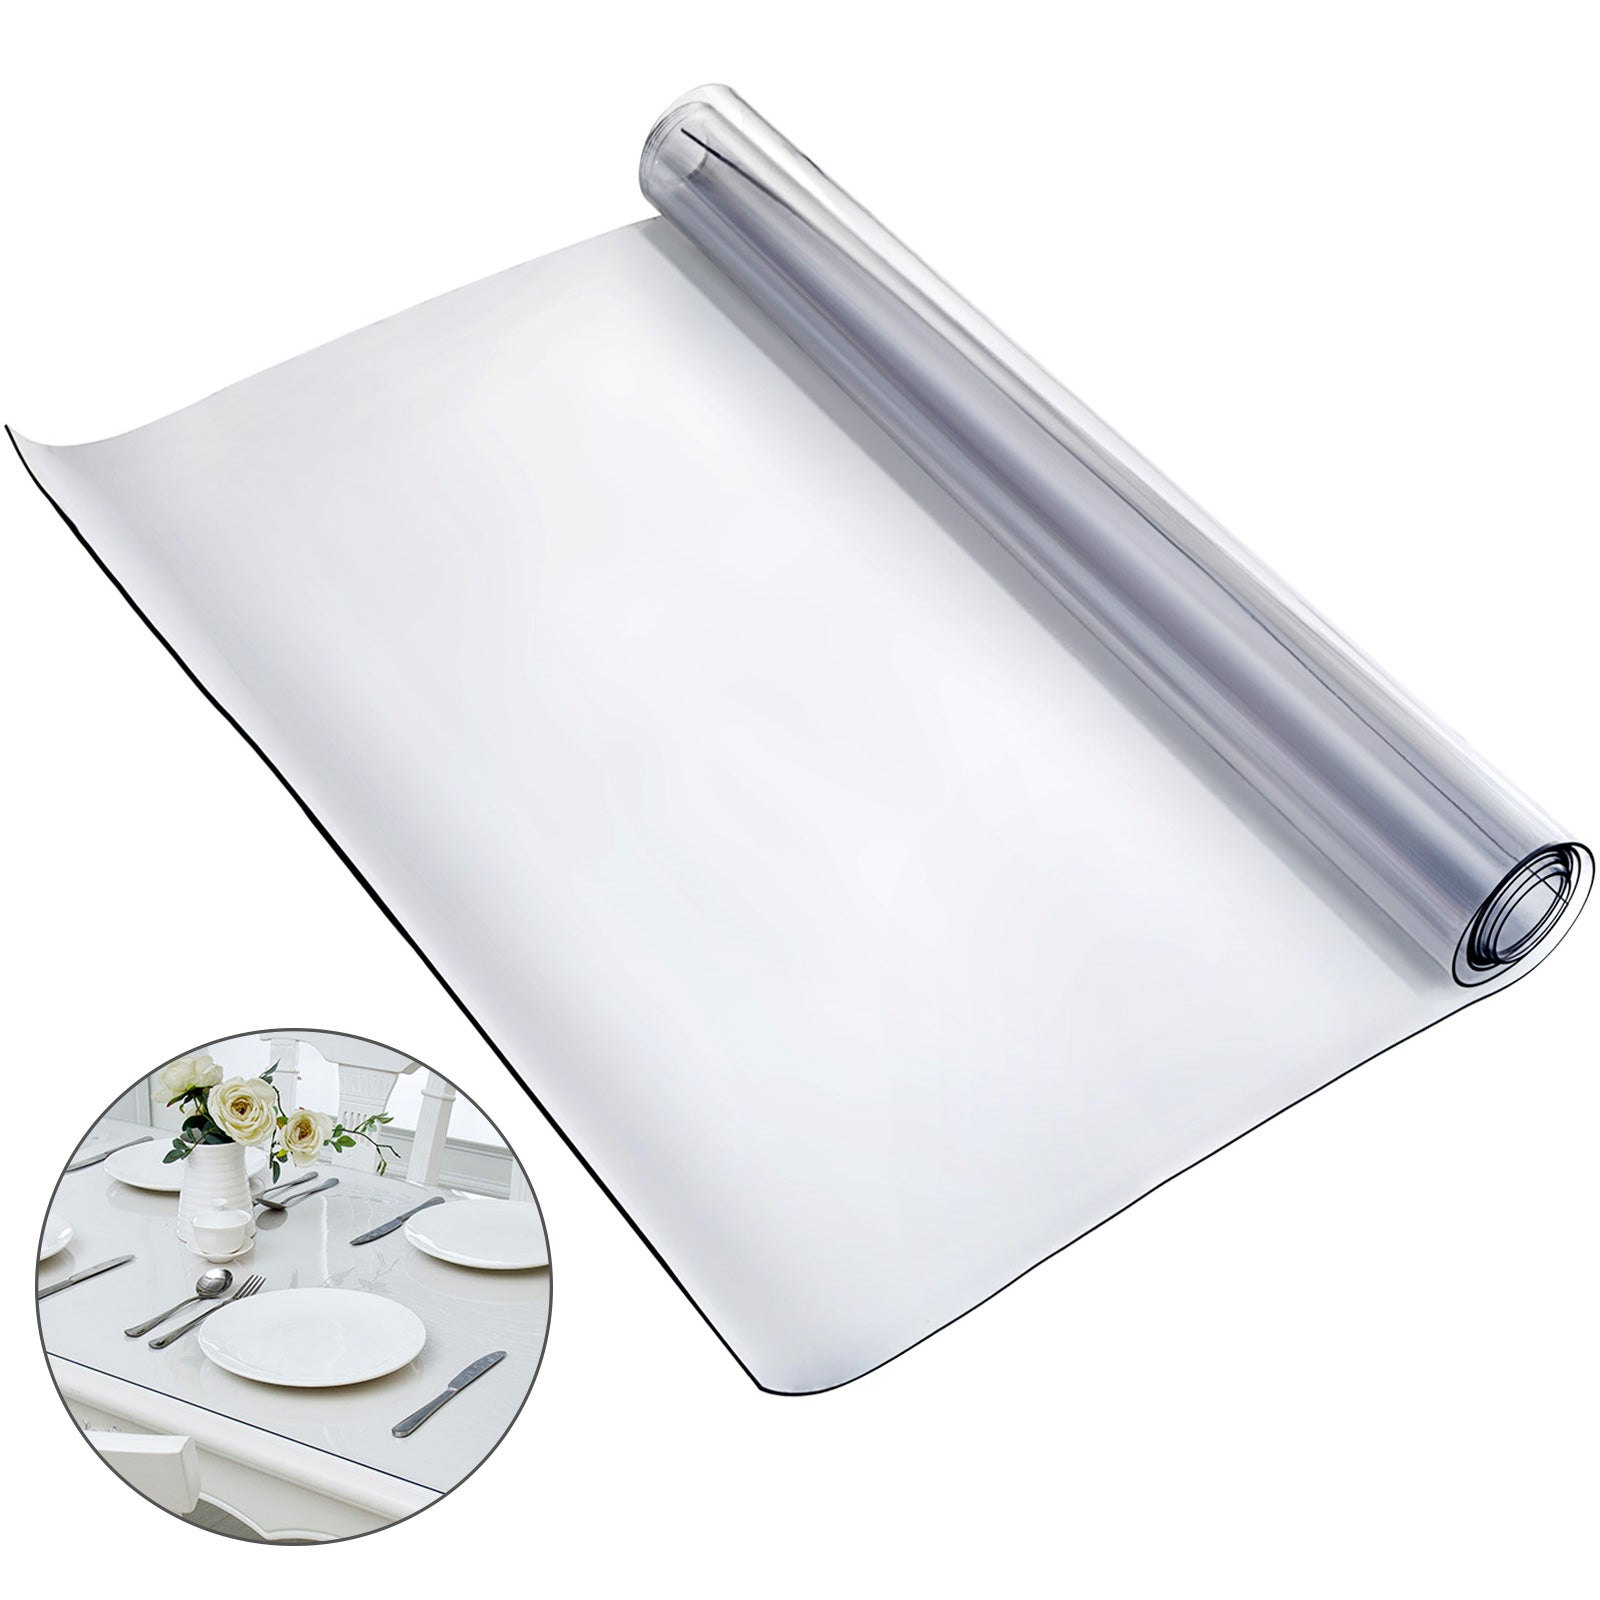 Pvc Tablecloth Protector 107 X 203 Cm Dining Table Cover Desk Waterproof